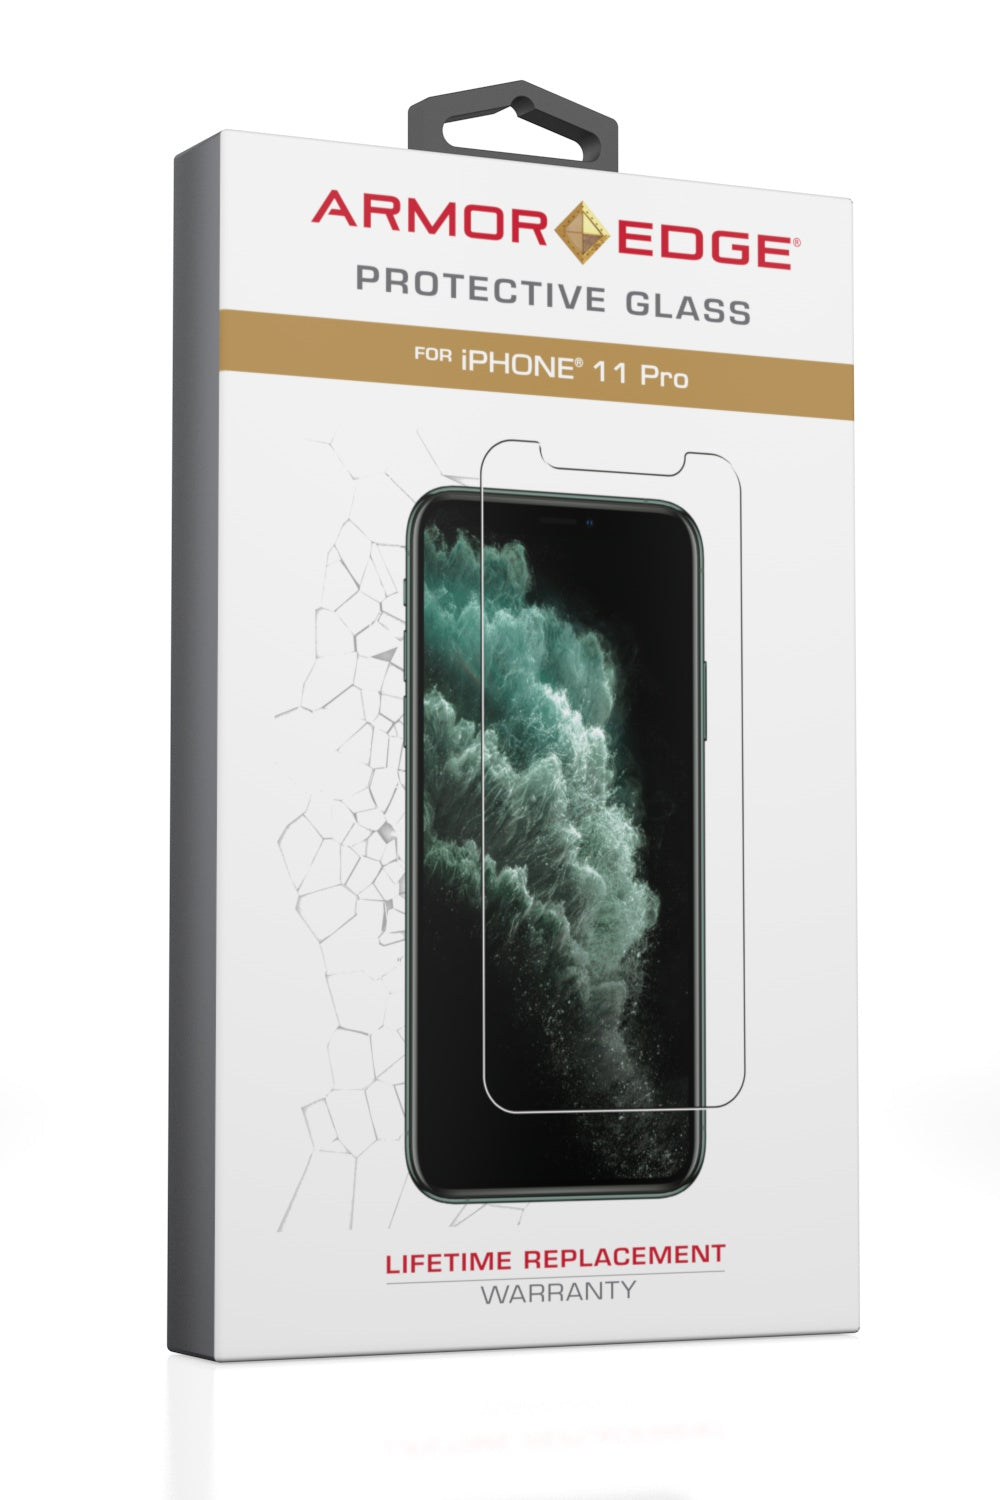 Armor Edge - Protective Glass for iPhone 11 Pro